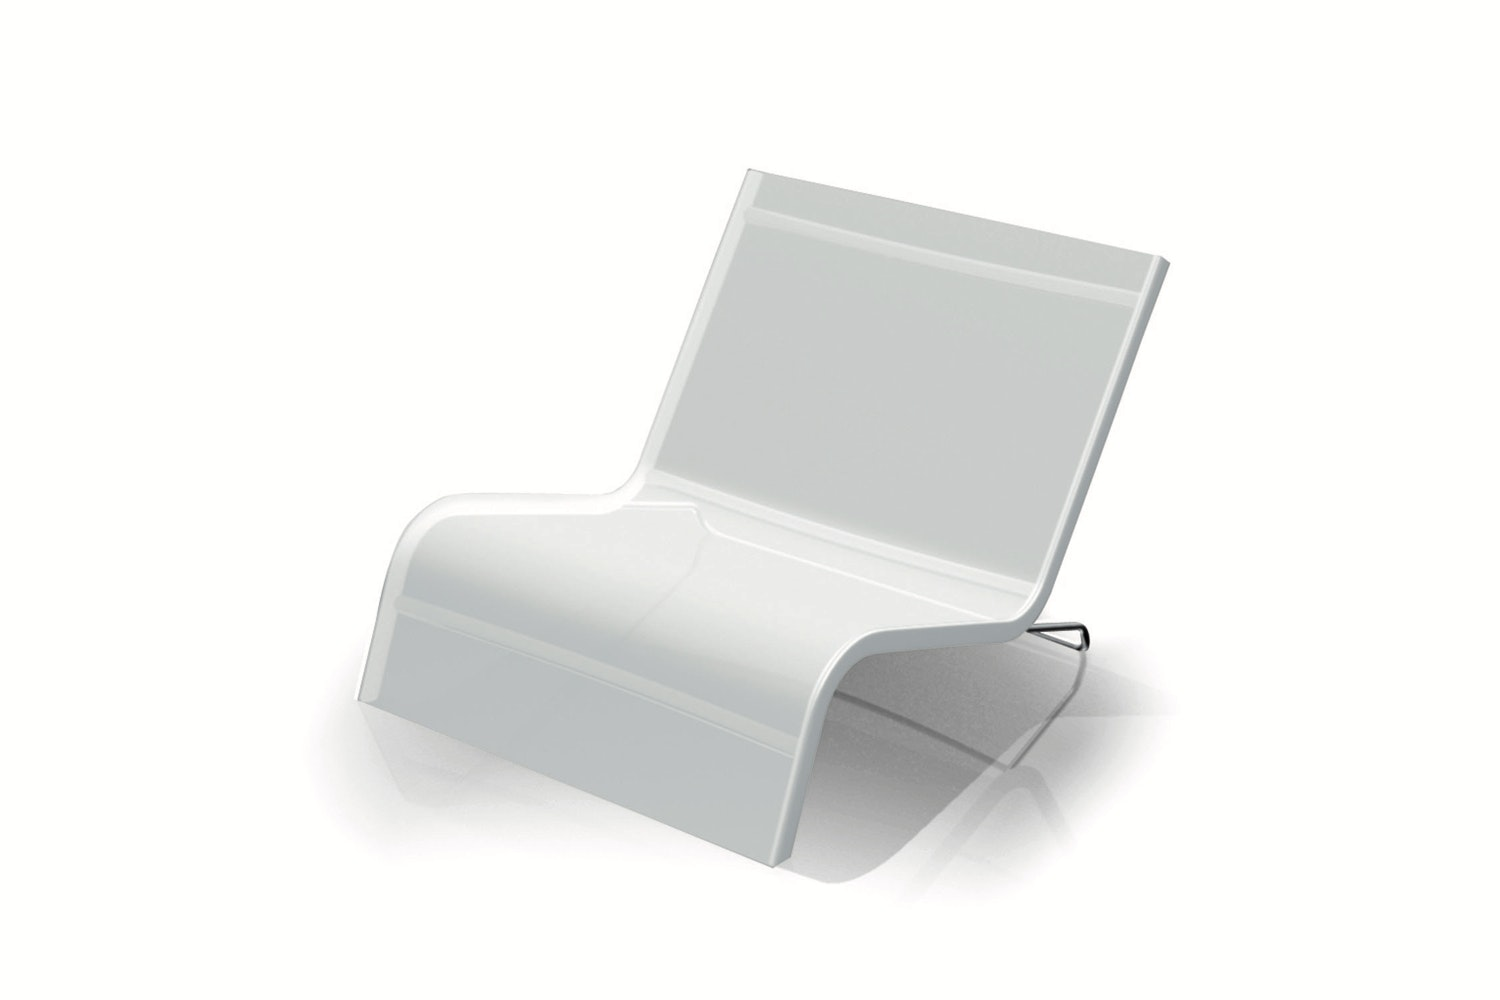 Lazy Deckchair Chaise by Michel Boucquillon for Serralunga